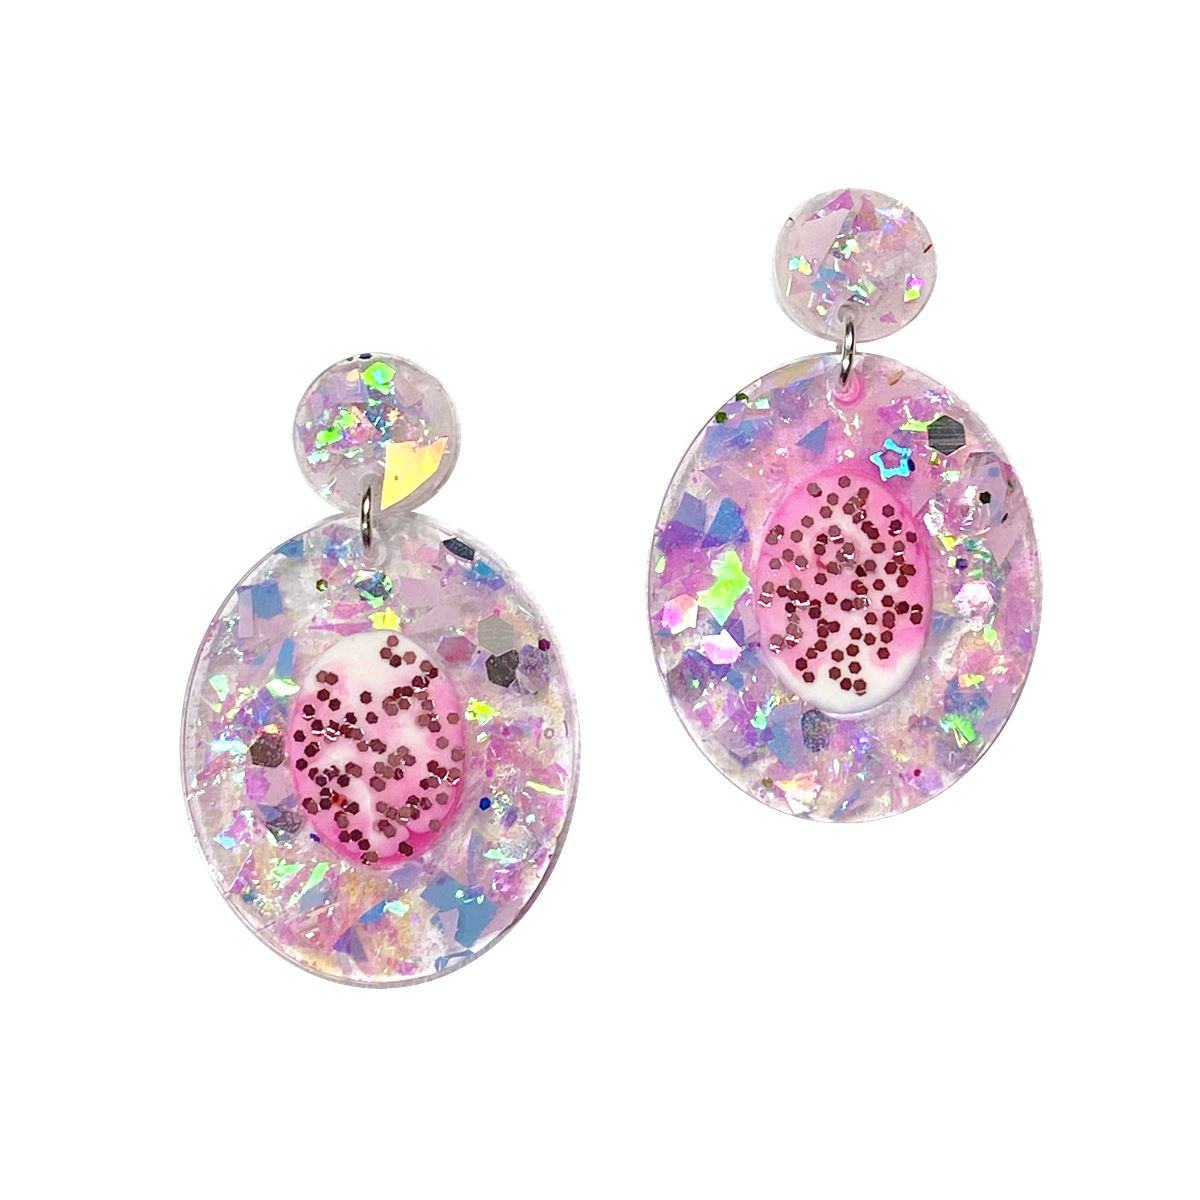 Unicorn Dreams - pink confetti resin earrings earrings Deanna Dot Store